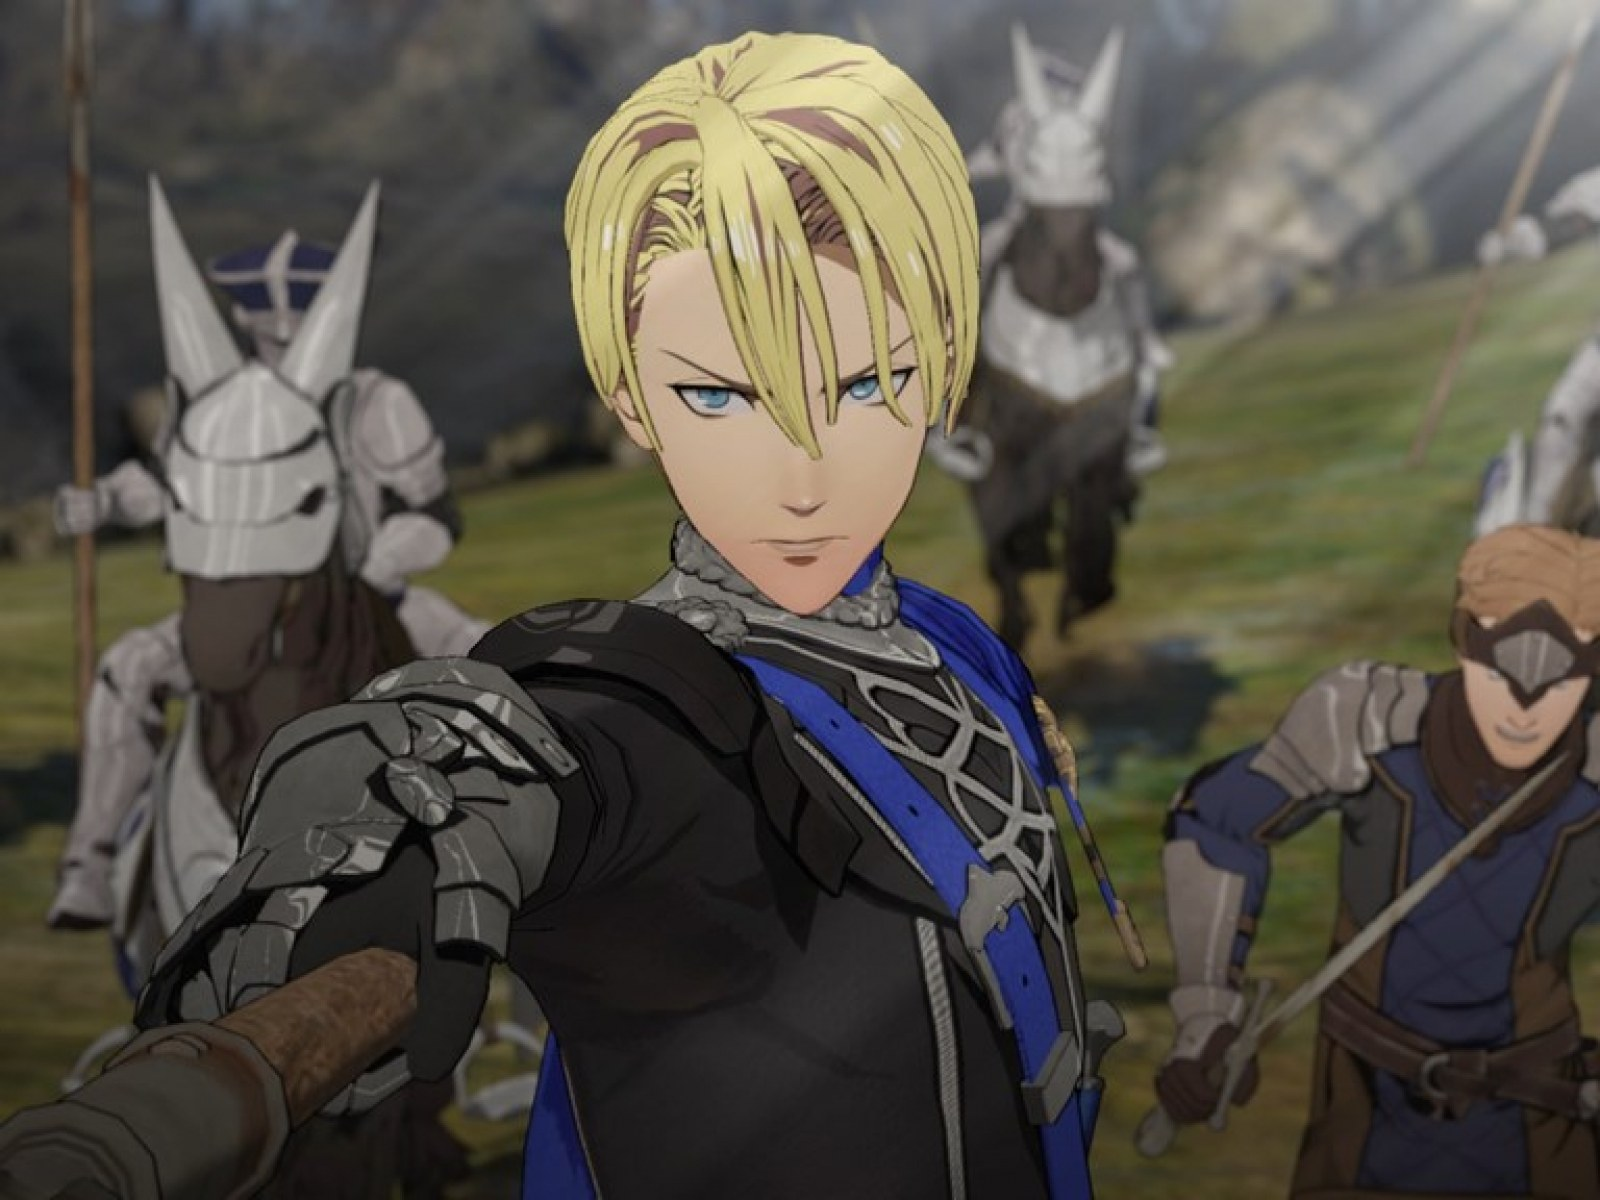 New Fire Emblem Three Houses Trailer Sheds More Light On The Story